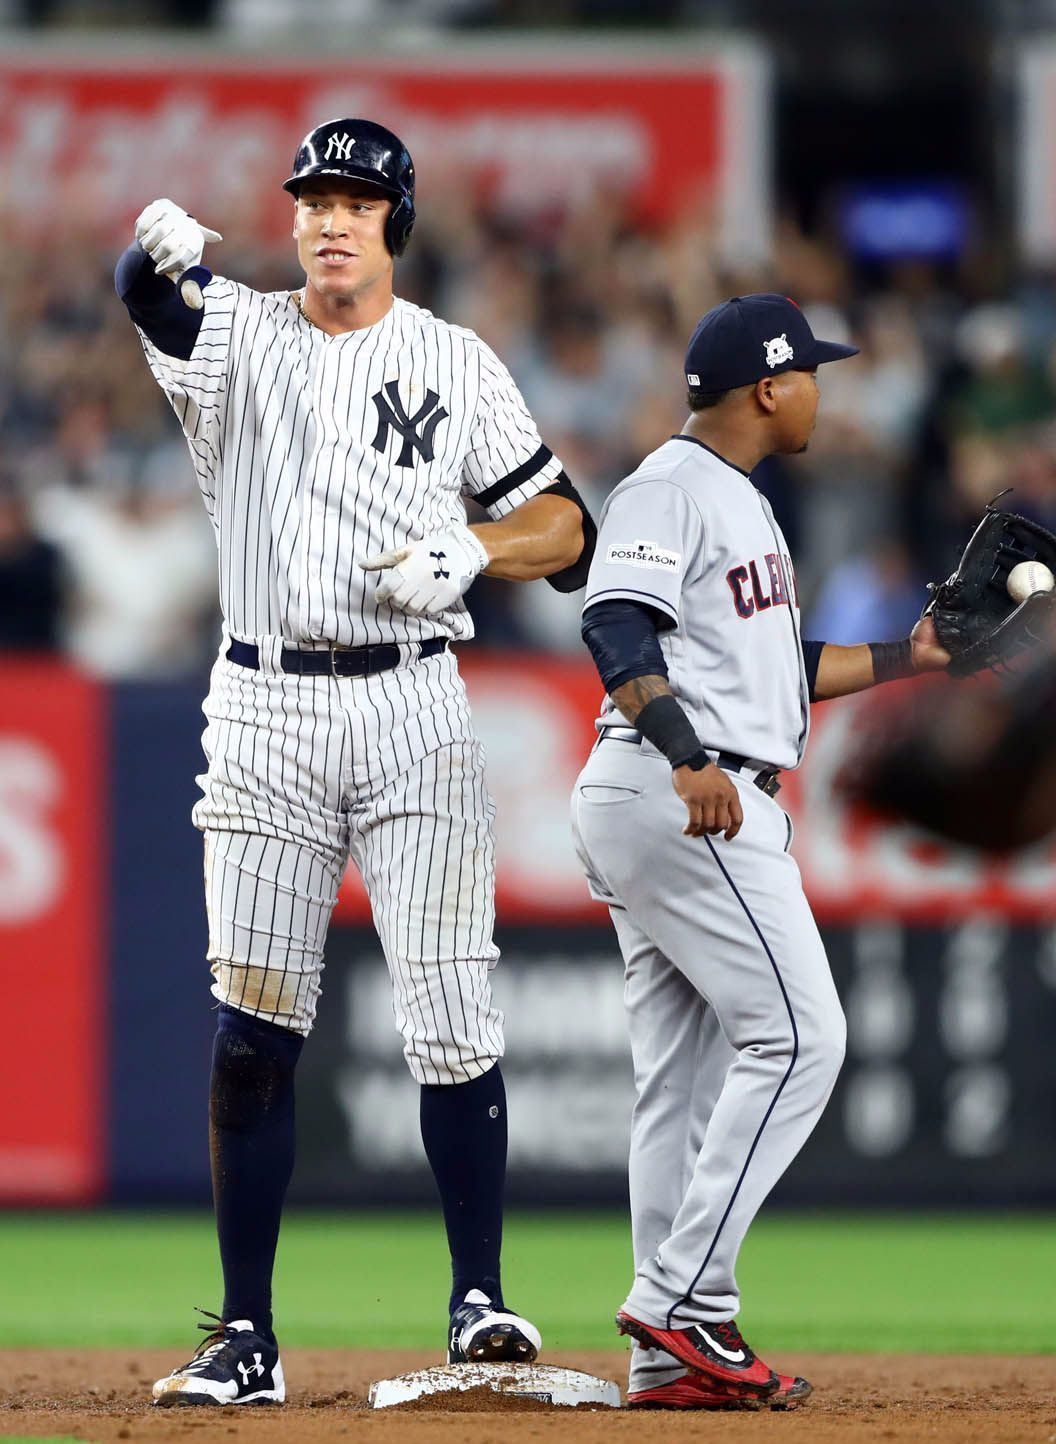 Aaron Judge Helps Send The Alds Back To Cleveland For A Game 5 In 2020 Yankees New York Yankees Ny Yankees